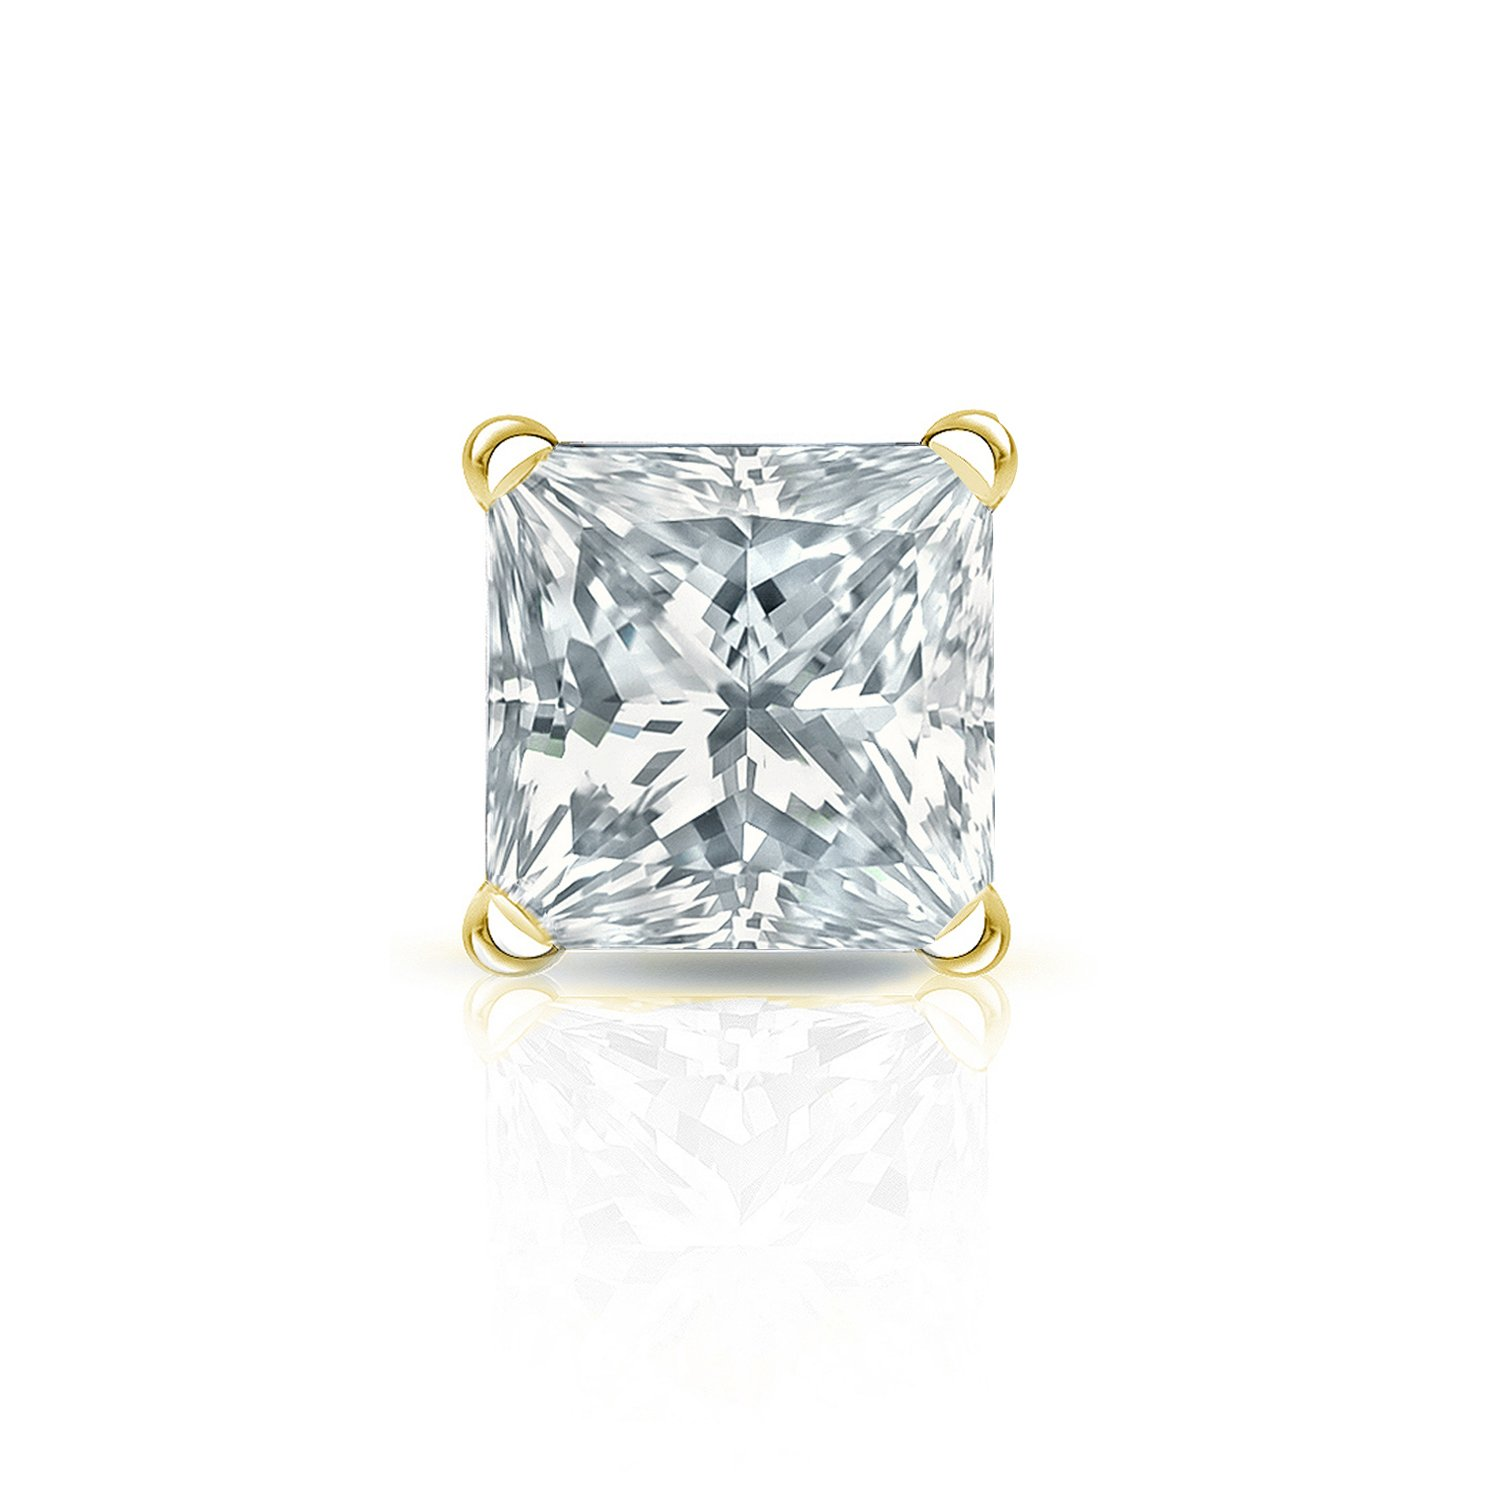 14k Yellow Gold Princess Diamond Simulant CZ SINGLE STUD Earring 4Prong 1//8-1cttw,Excellent Quality